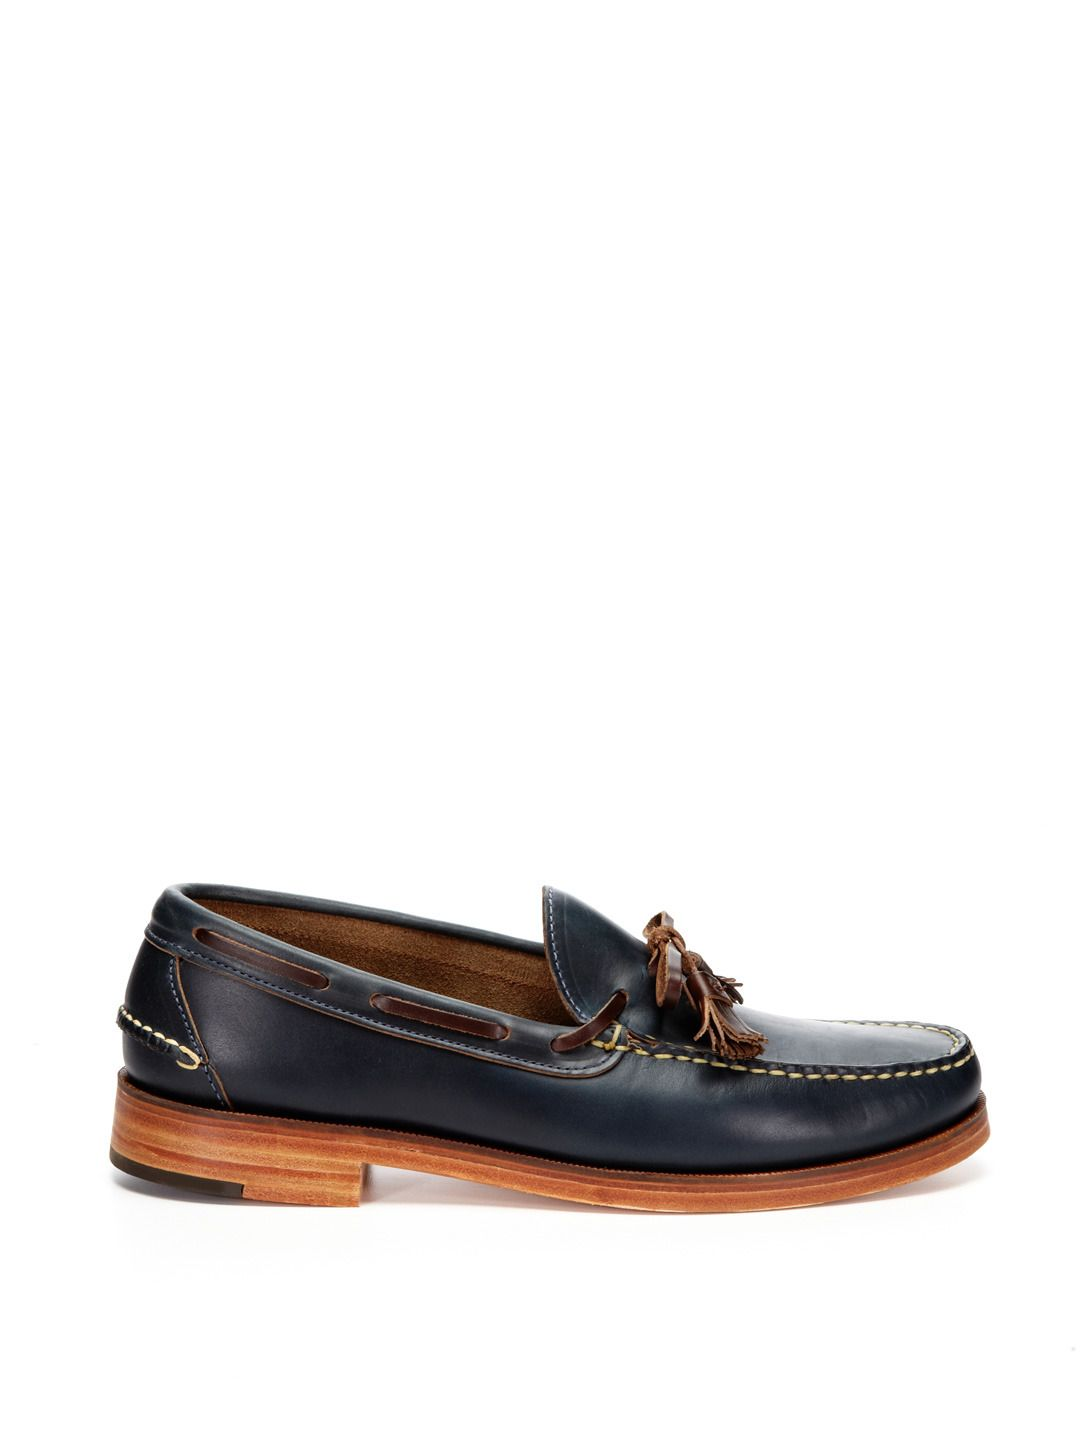 23ef8c17d410 Fryeburg Tassel Loafer by Eastland Made in Maine on Park   Bond ...